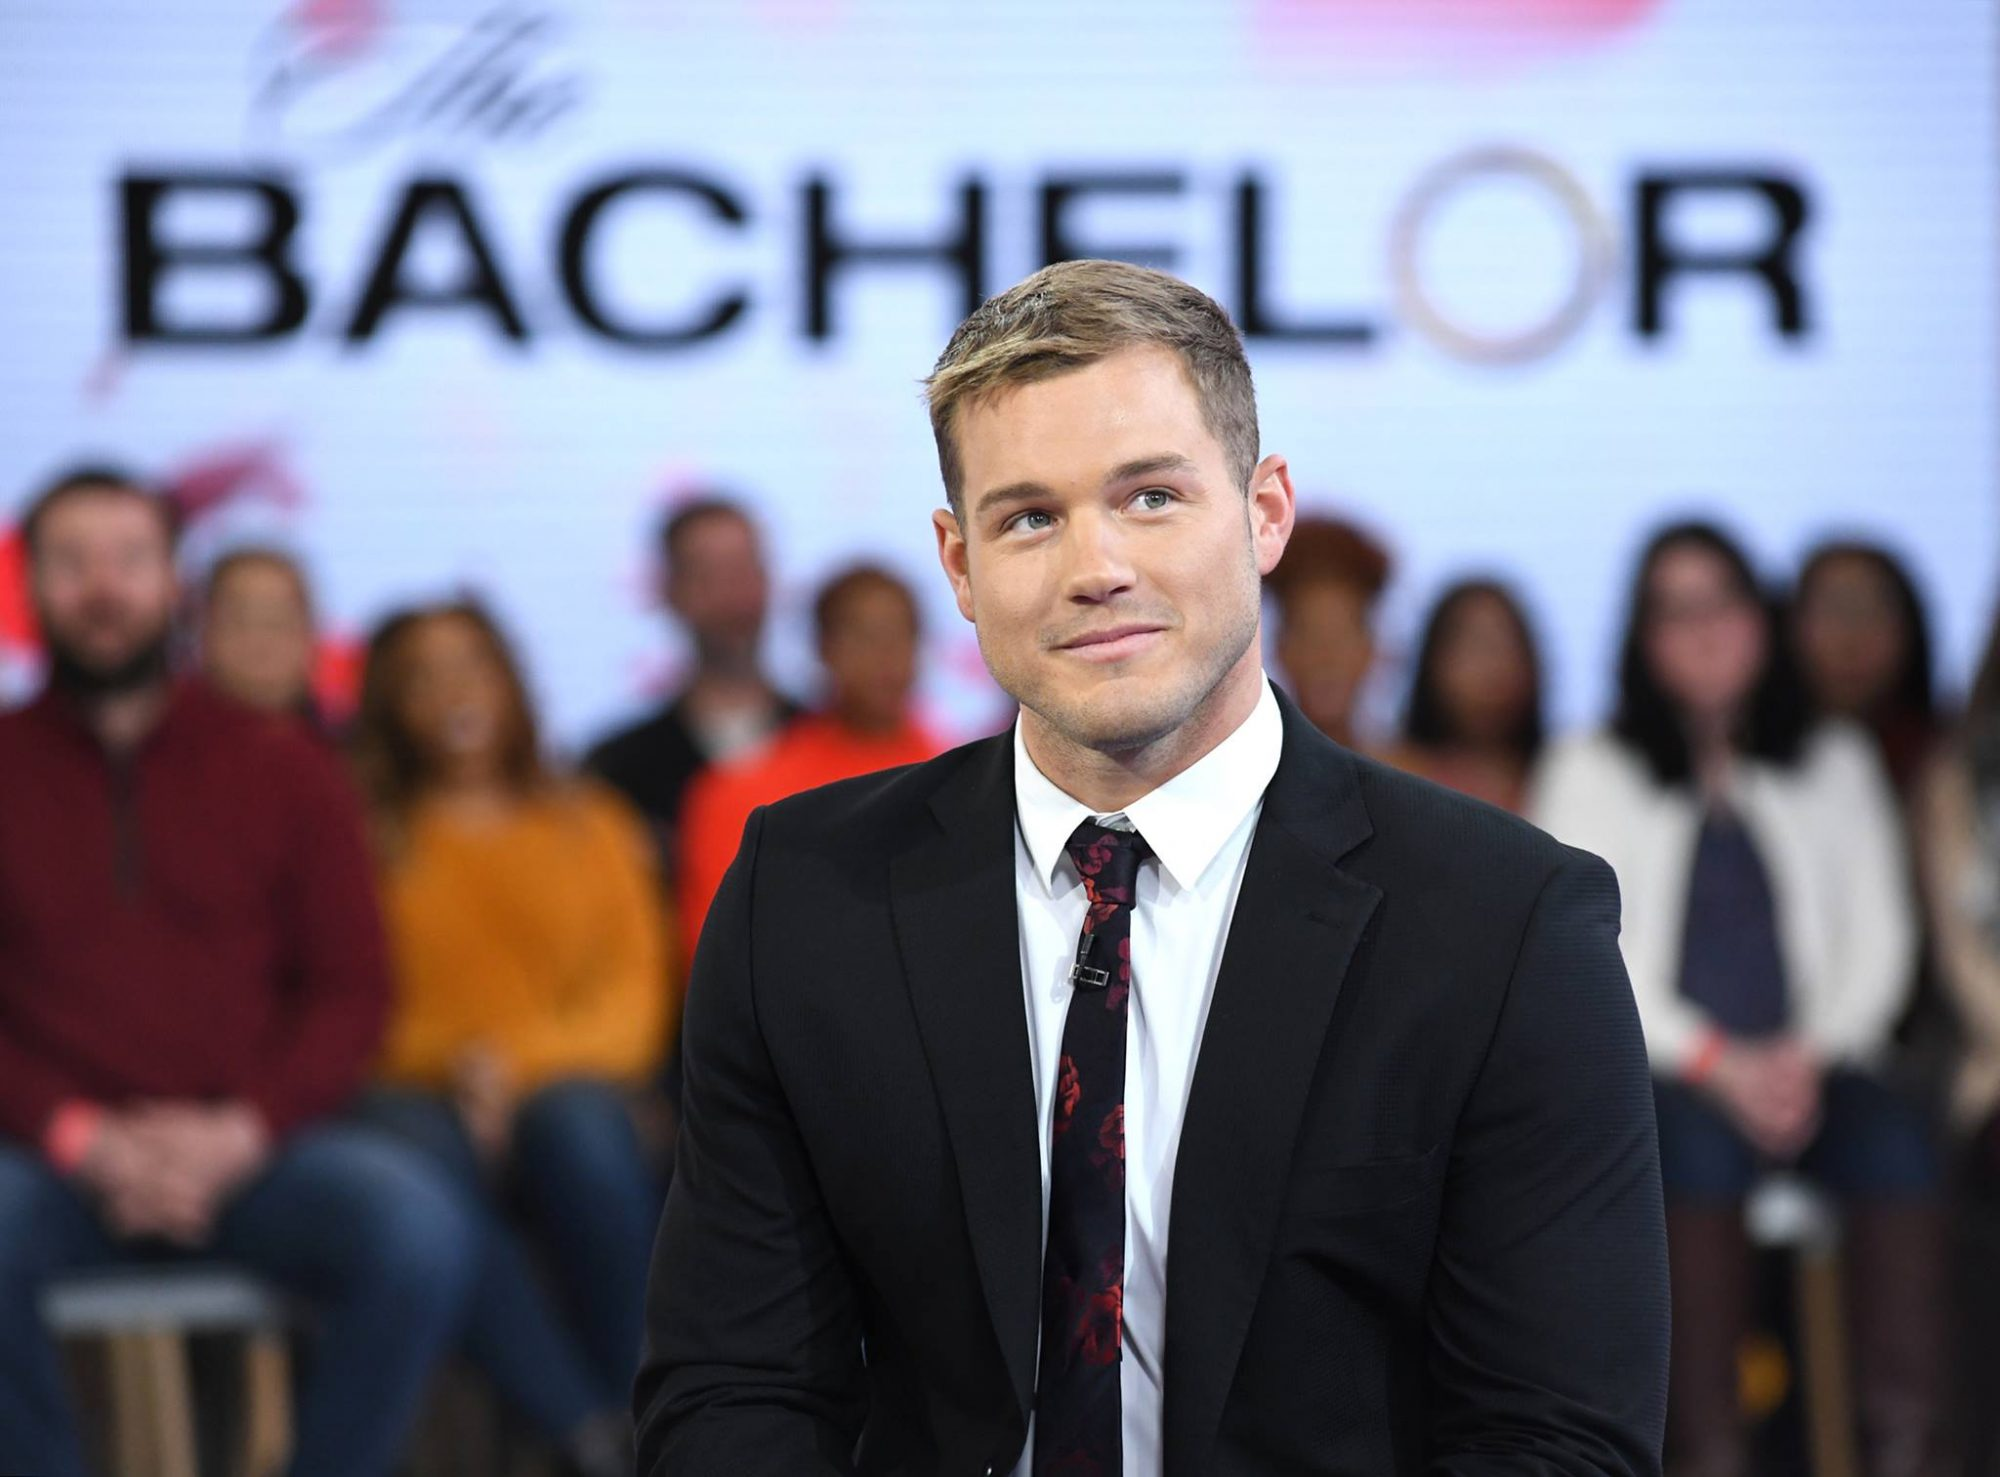 What To Make for the <em>Bachelor</em> Finale Based On Who You Think Will Win Colton's Heart